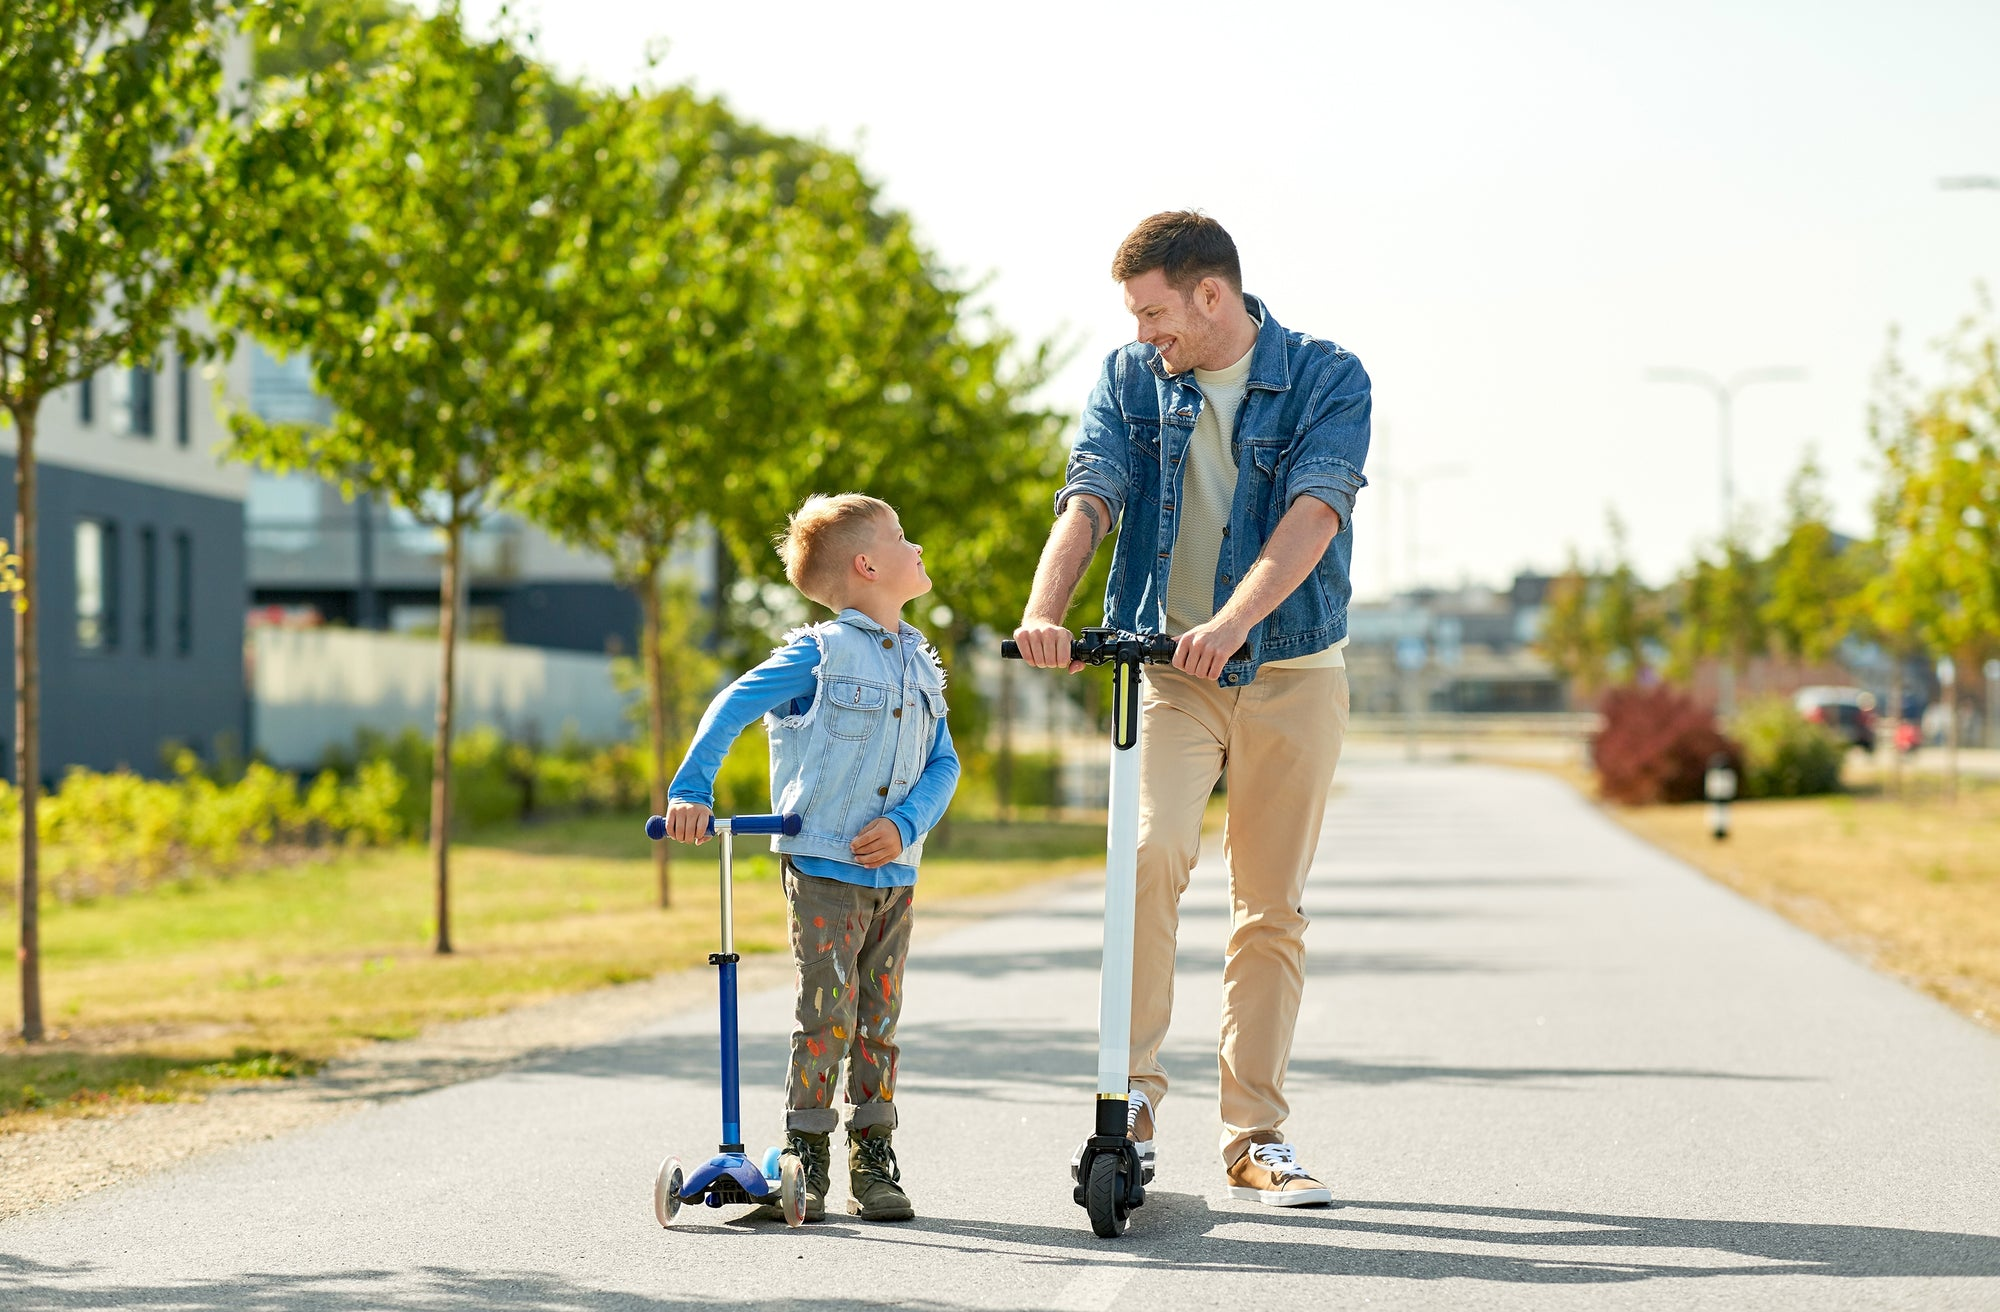 This Father's Day spend quality time biking and scooting with your kids